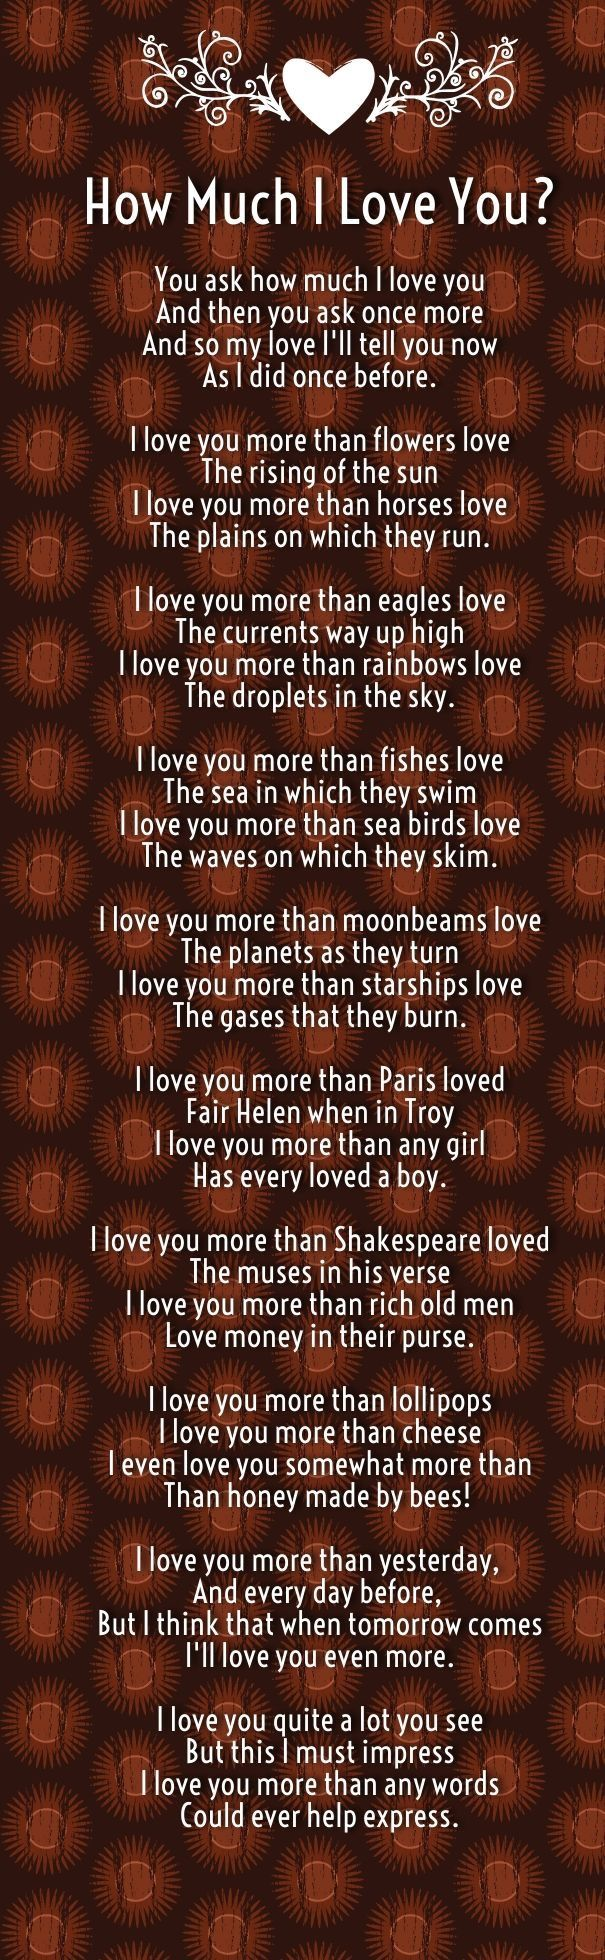 25 best ideas about marriage poems on pinterest best